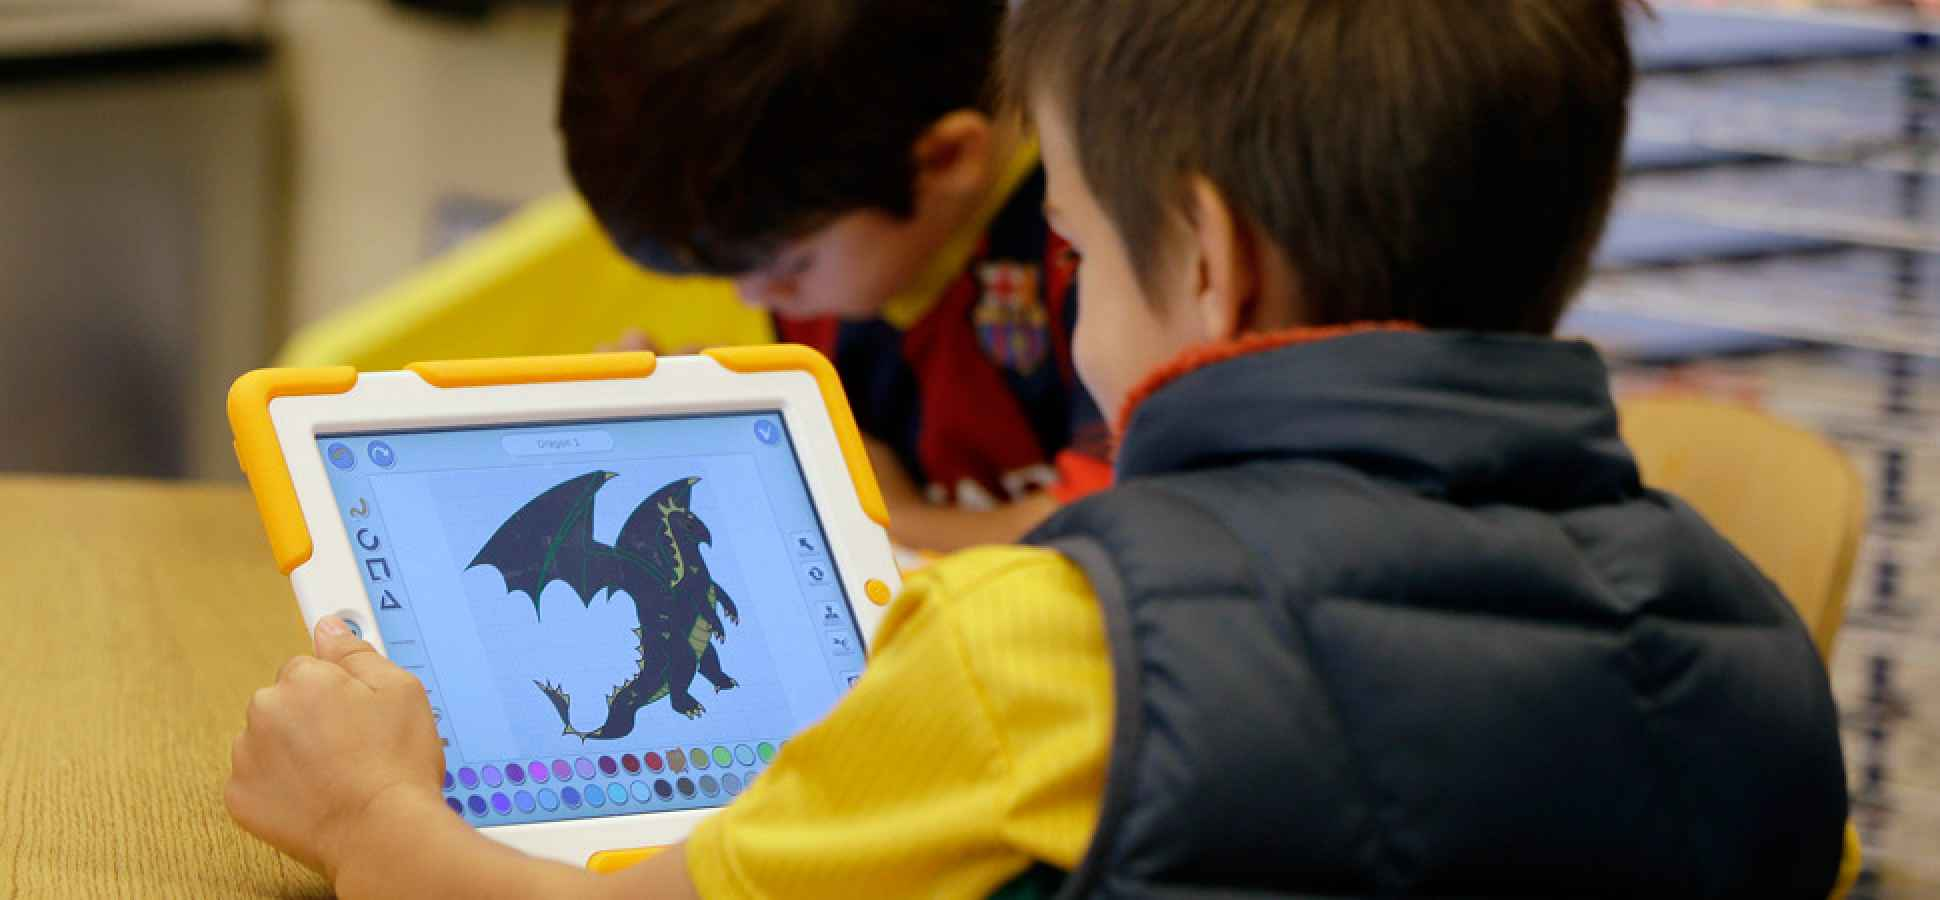 Meet ScratchJr, the App that Teaches 5-Year-Olds How to Code